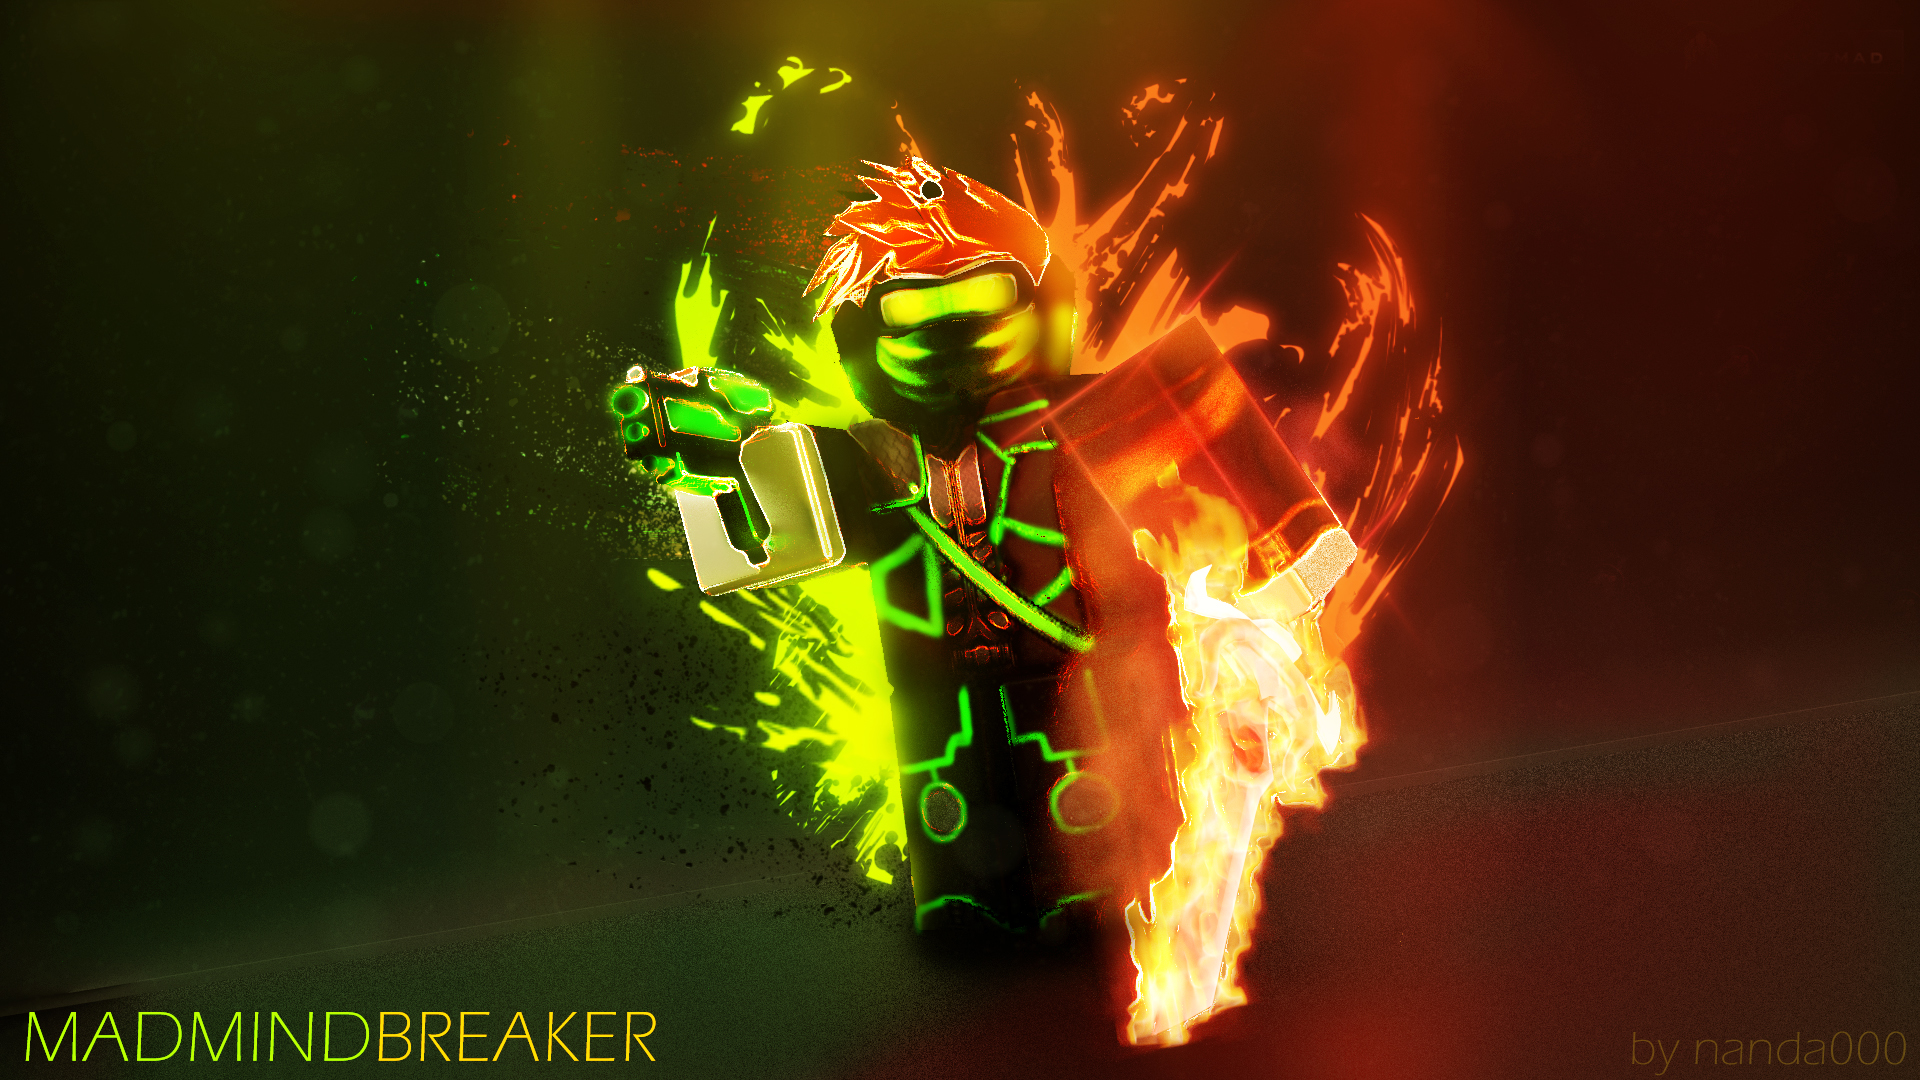 A Roblox GFX By Nanda000 For MadMindBreaker NandaMC